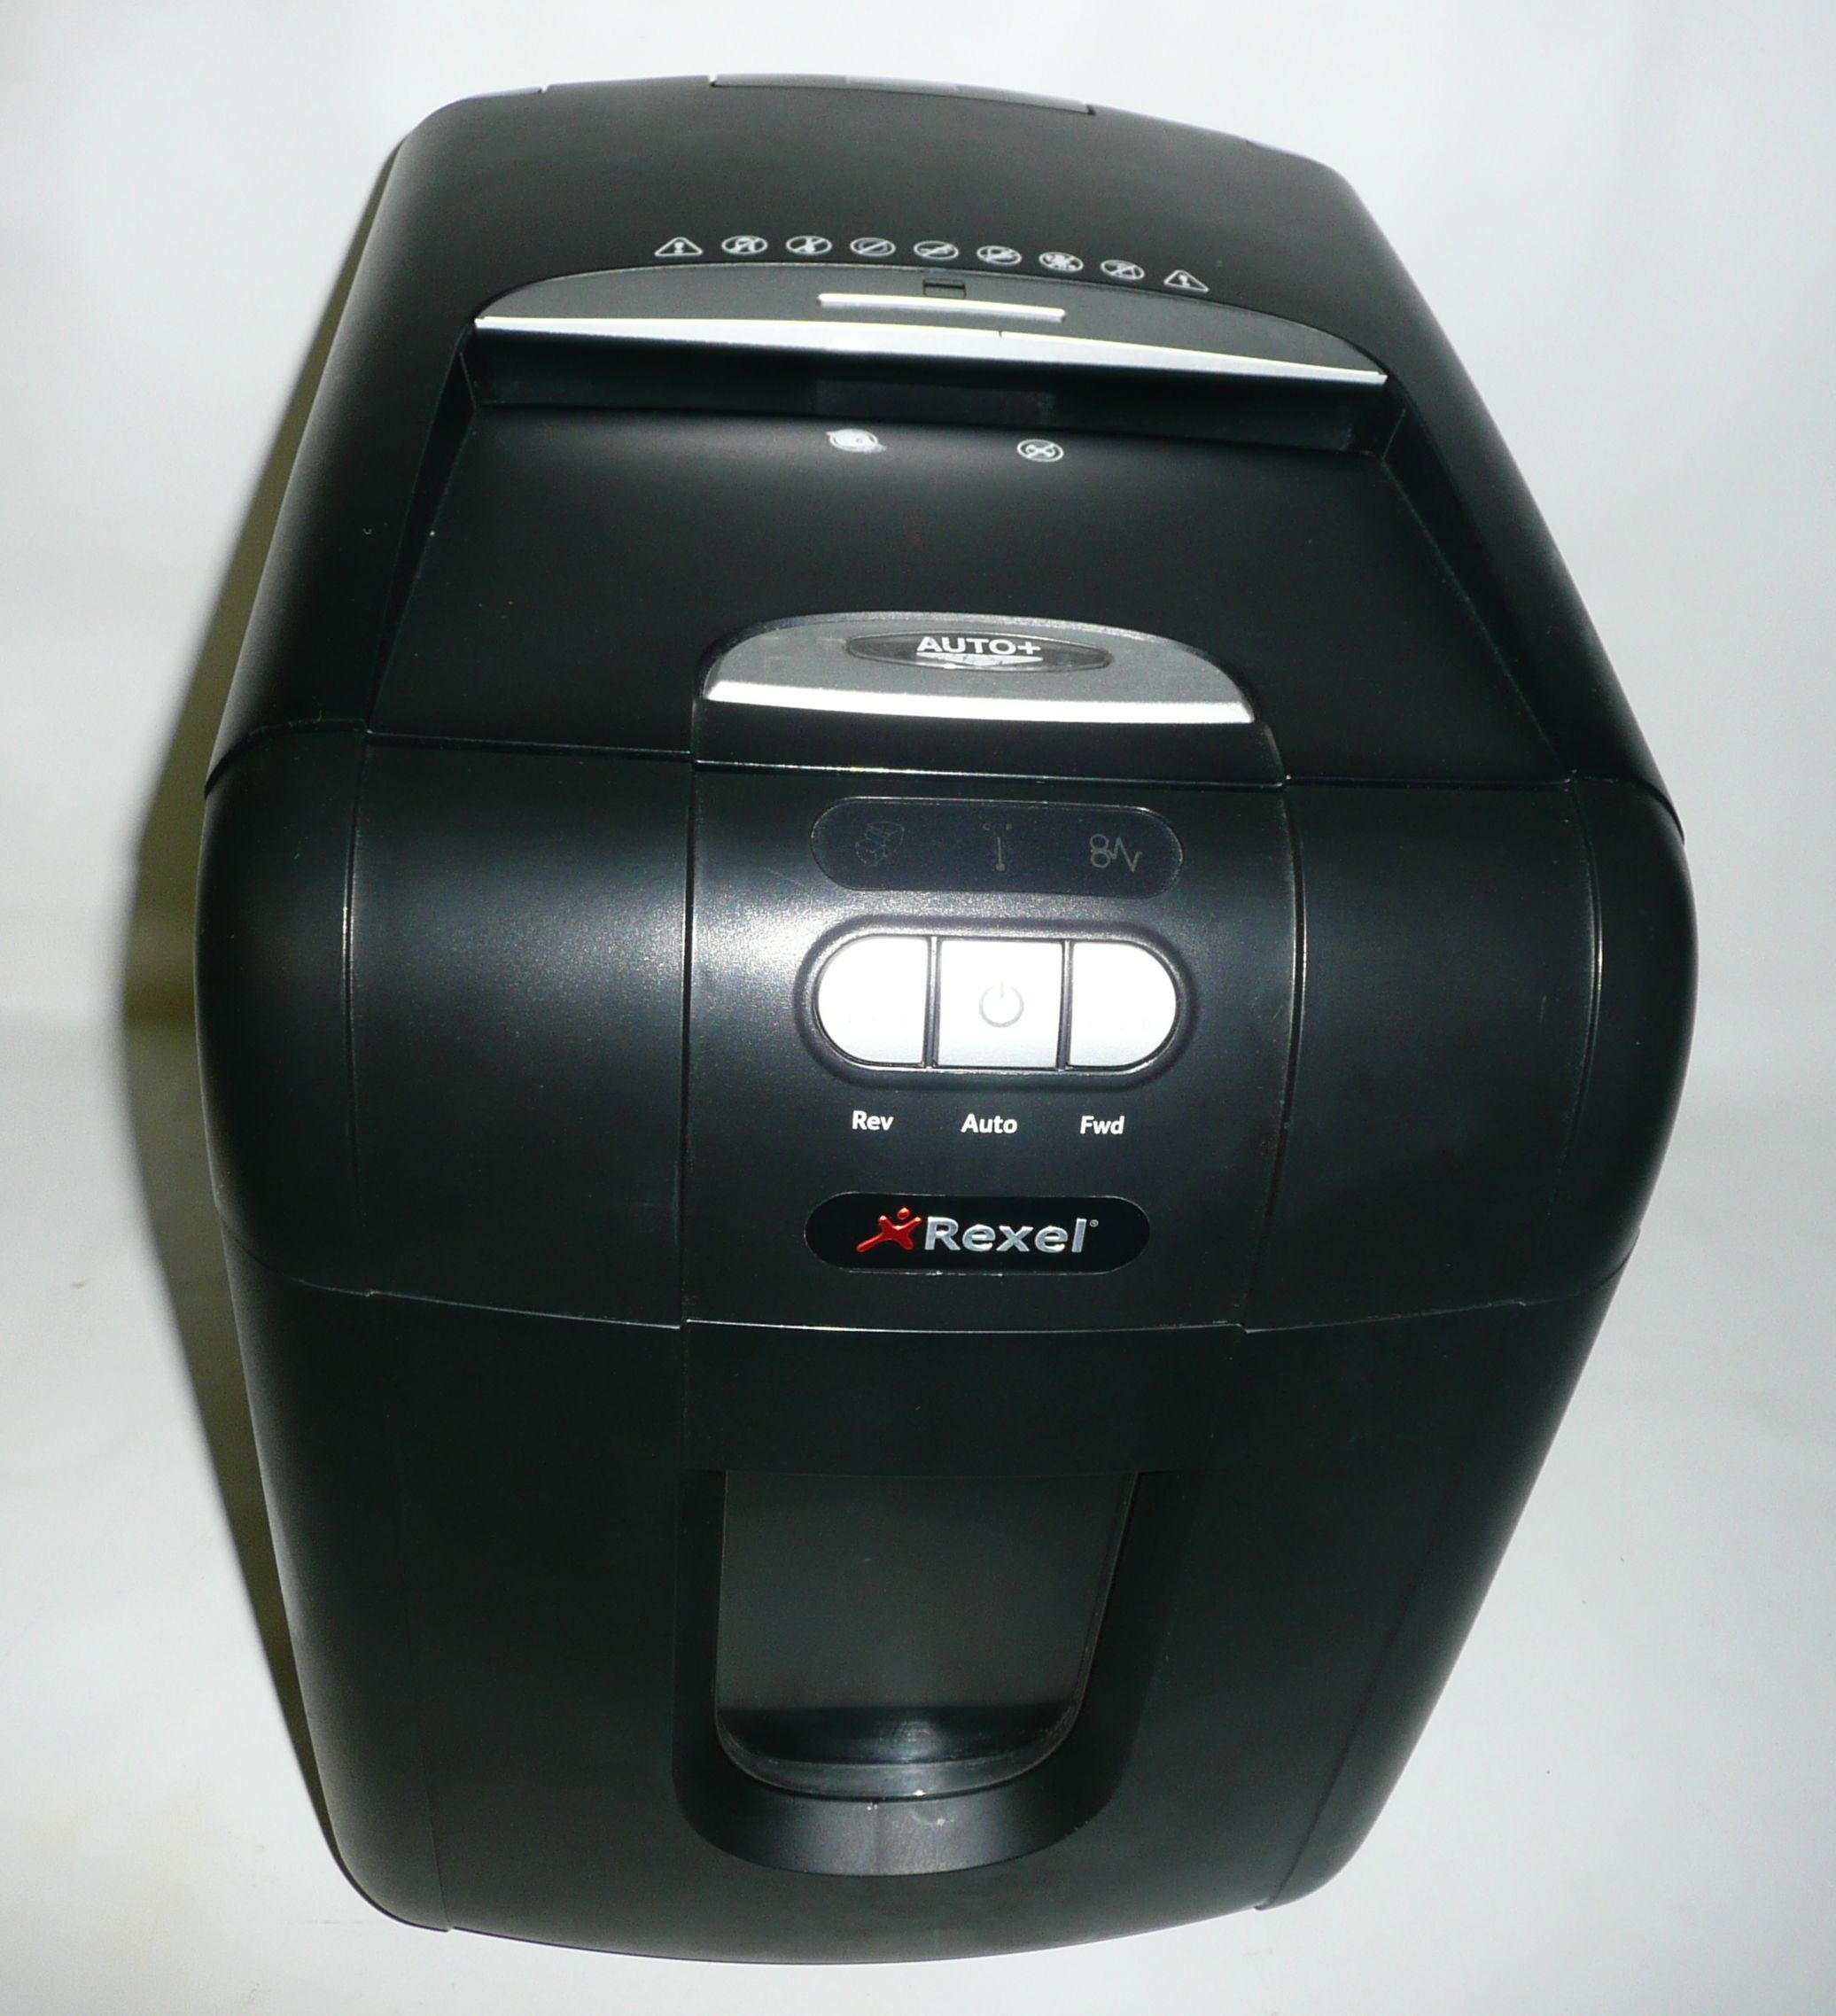 rexel shredder how to use